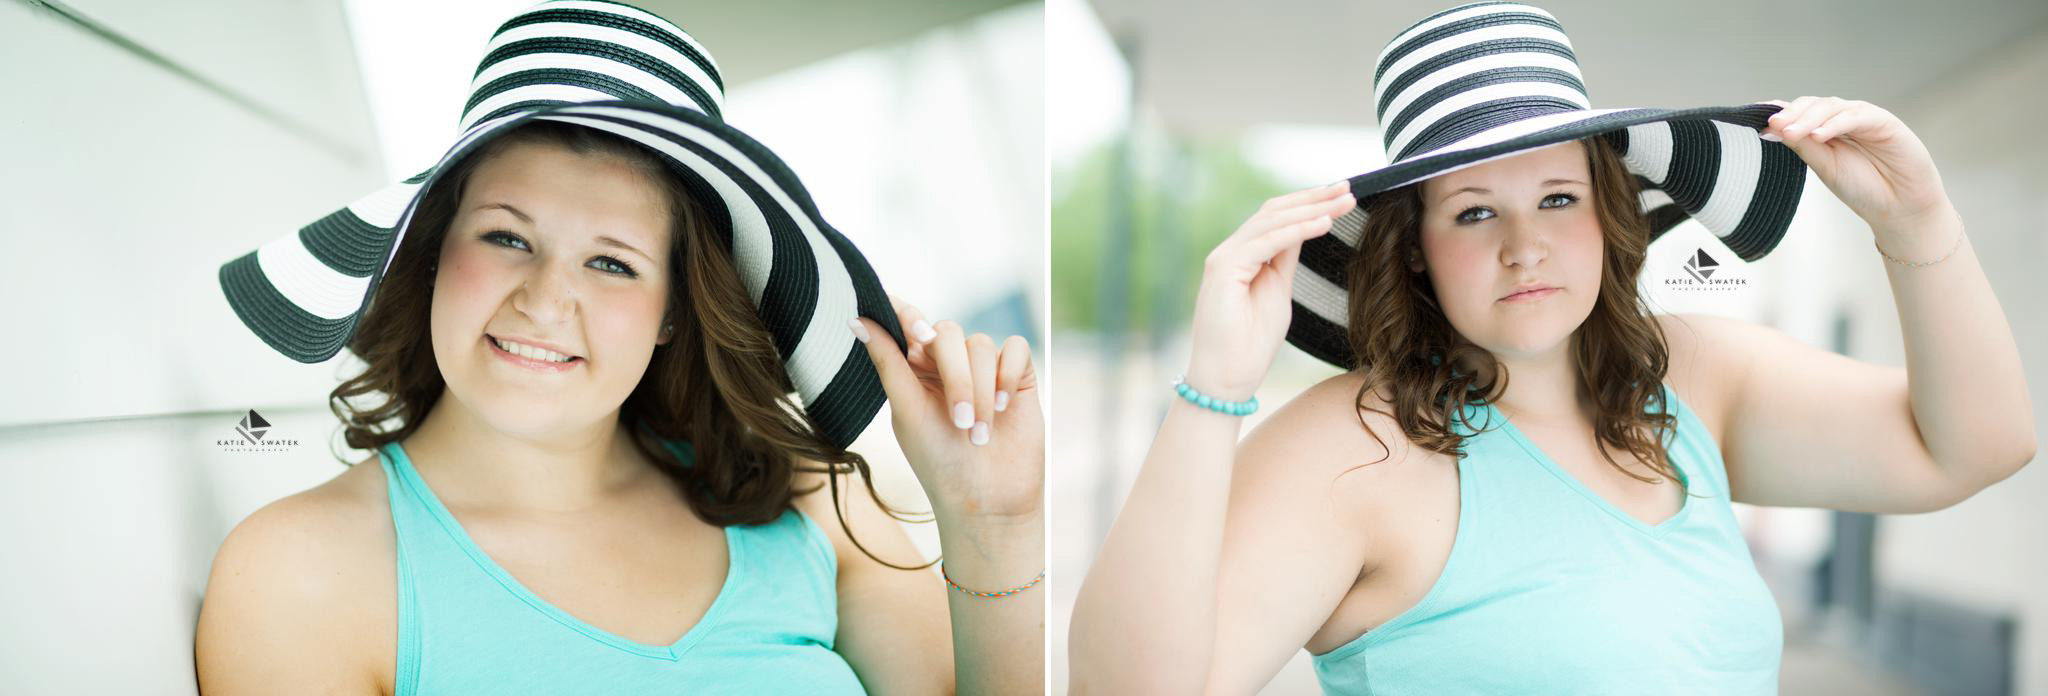 brunette senior girl in a blue tank top and a black and white striped hat in a white alley setting